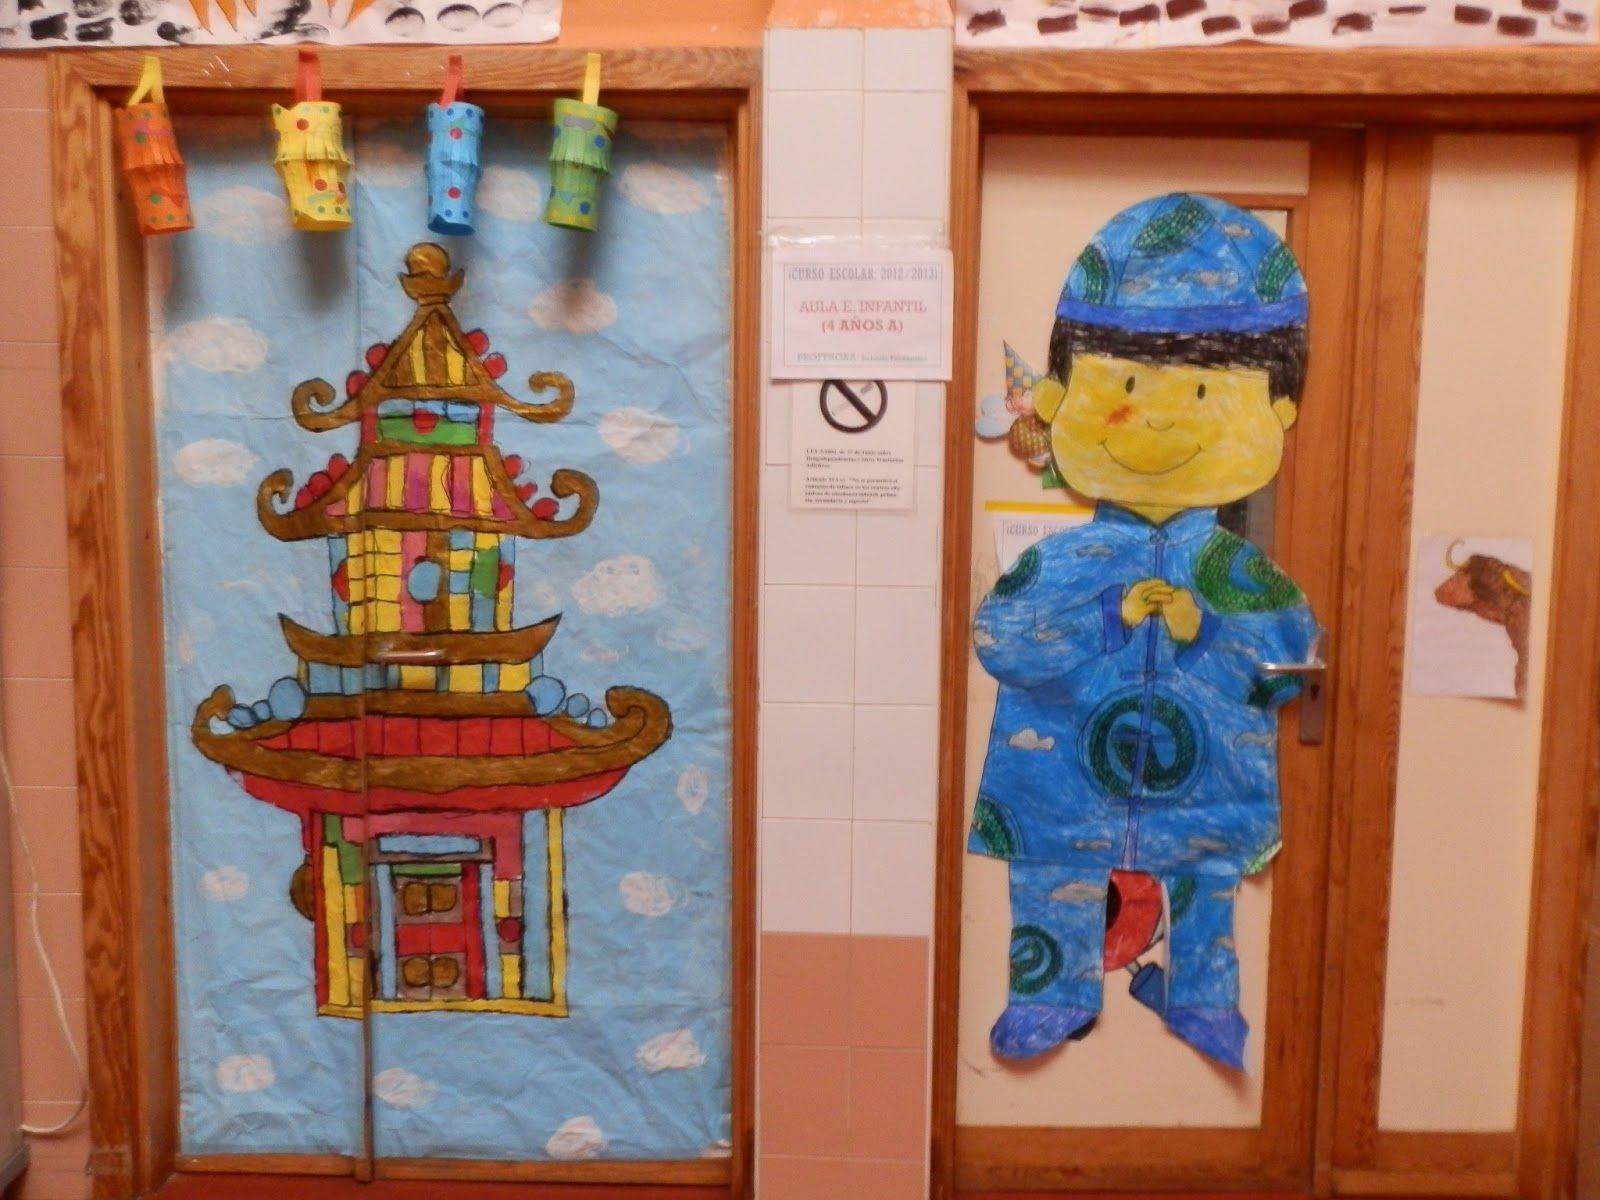 China para ni os educacion infantil buscar con google for Decoracion puerta aula infantil